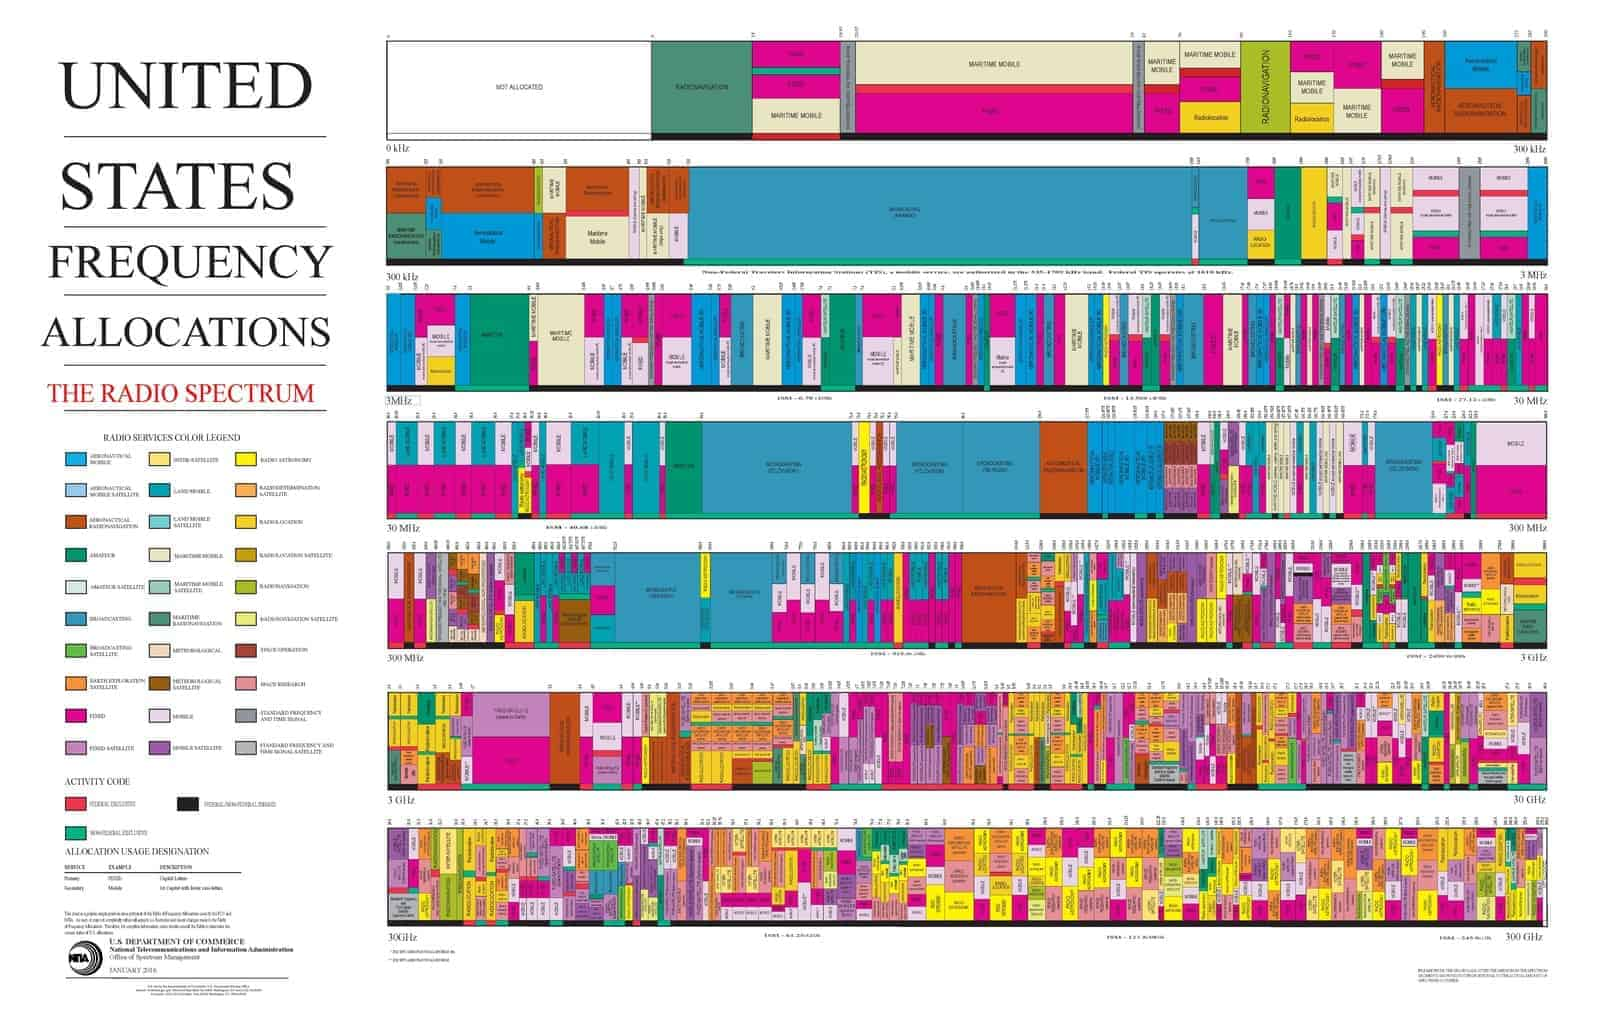 Frequency allocation chart for USA.